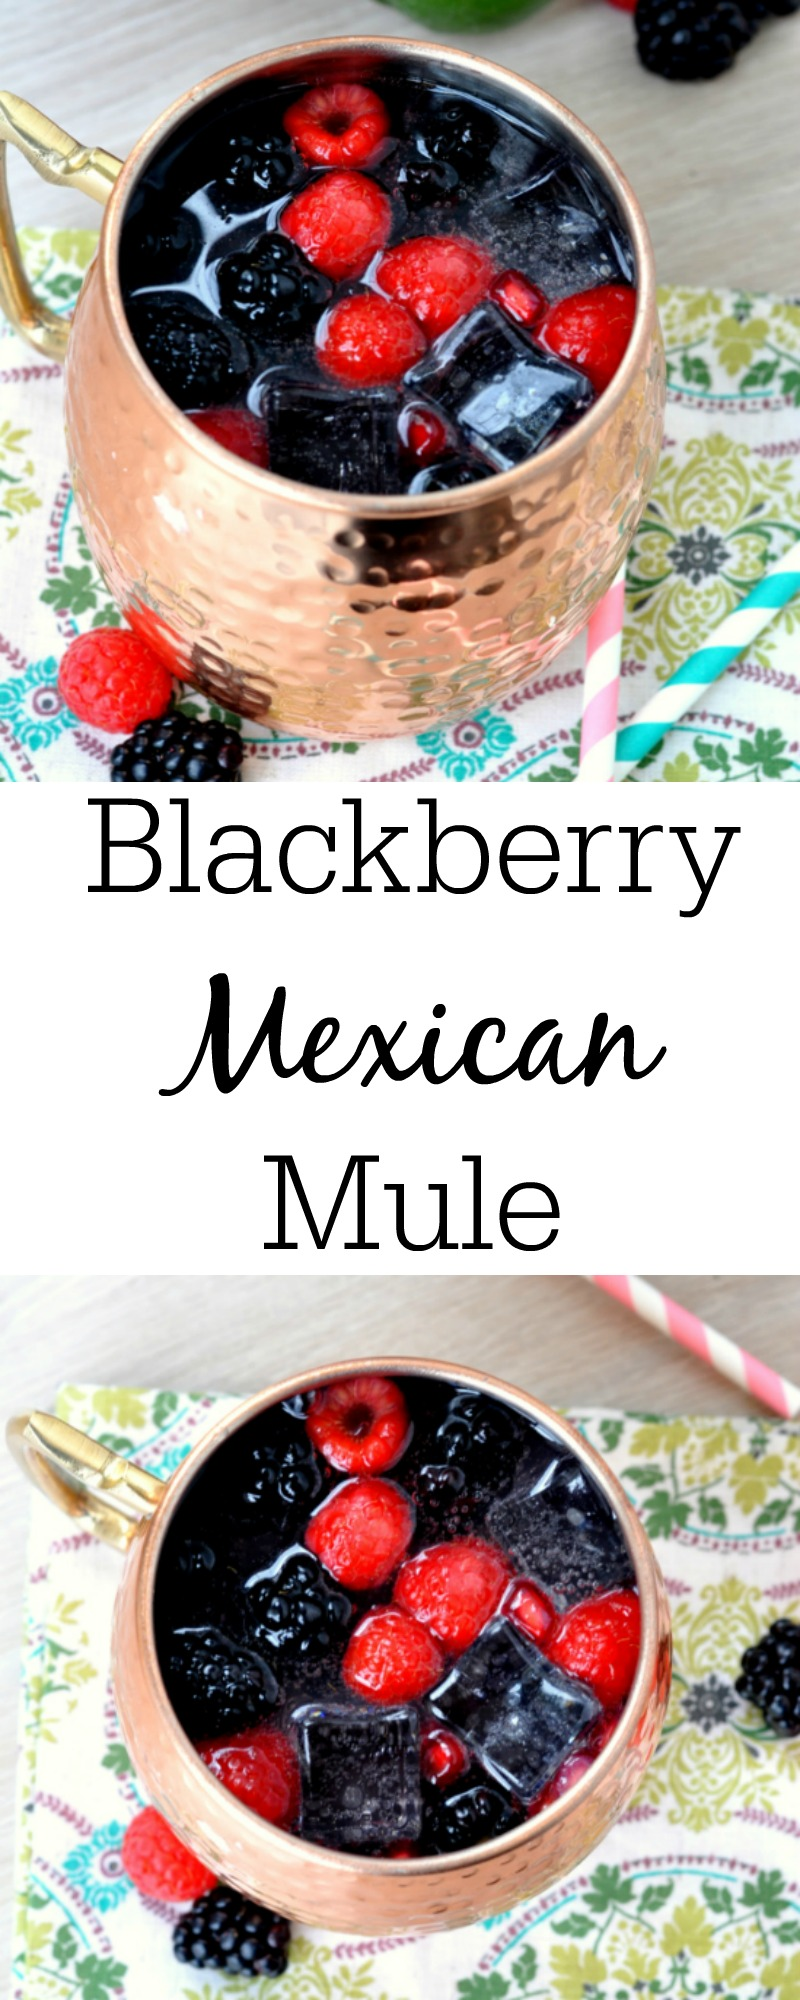 Blackberry Mexican Mule